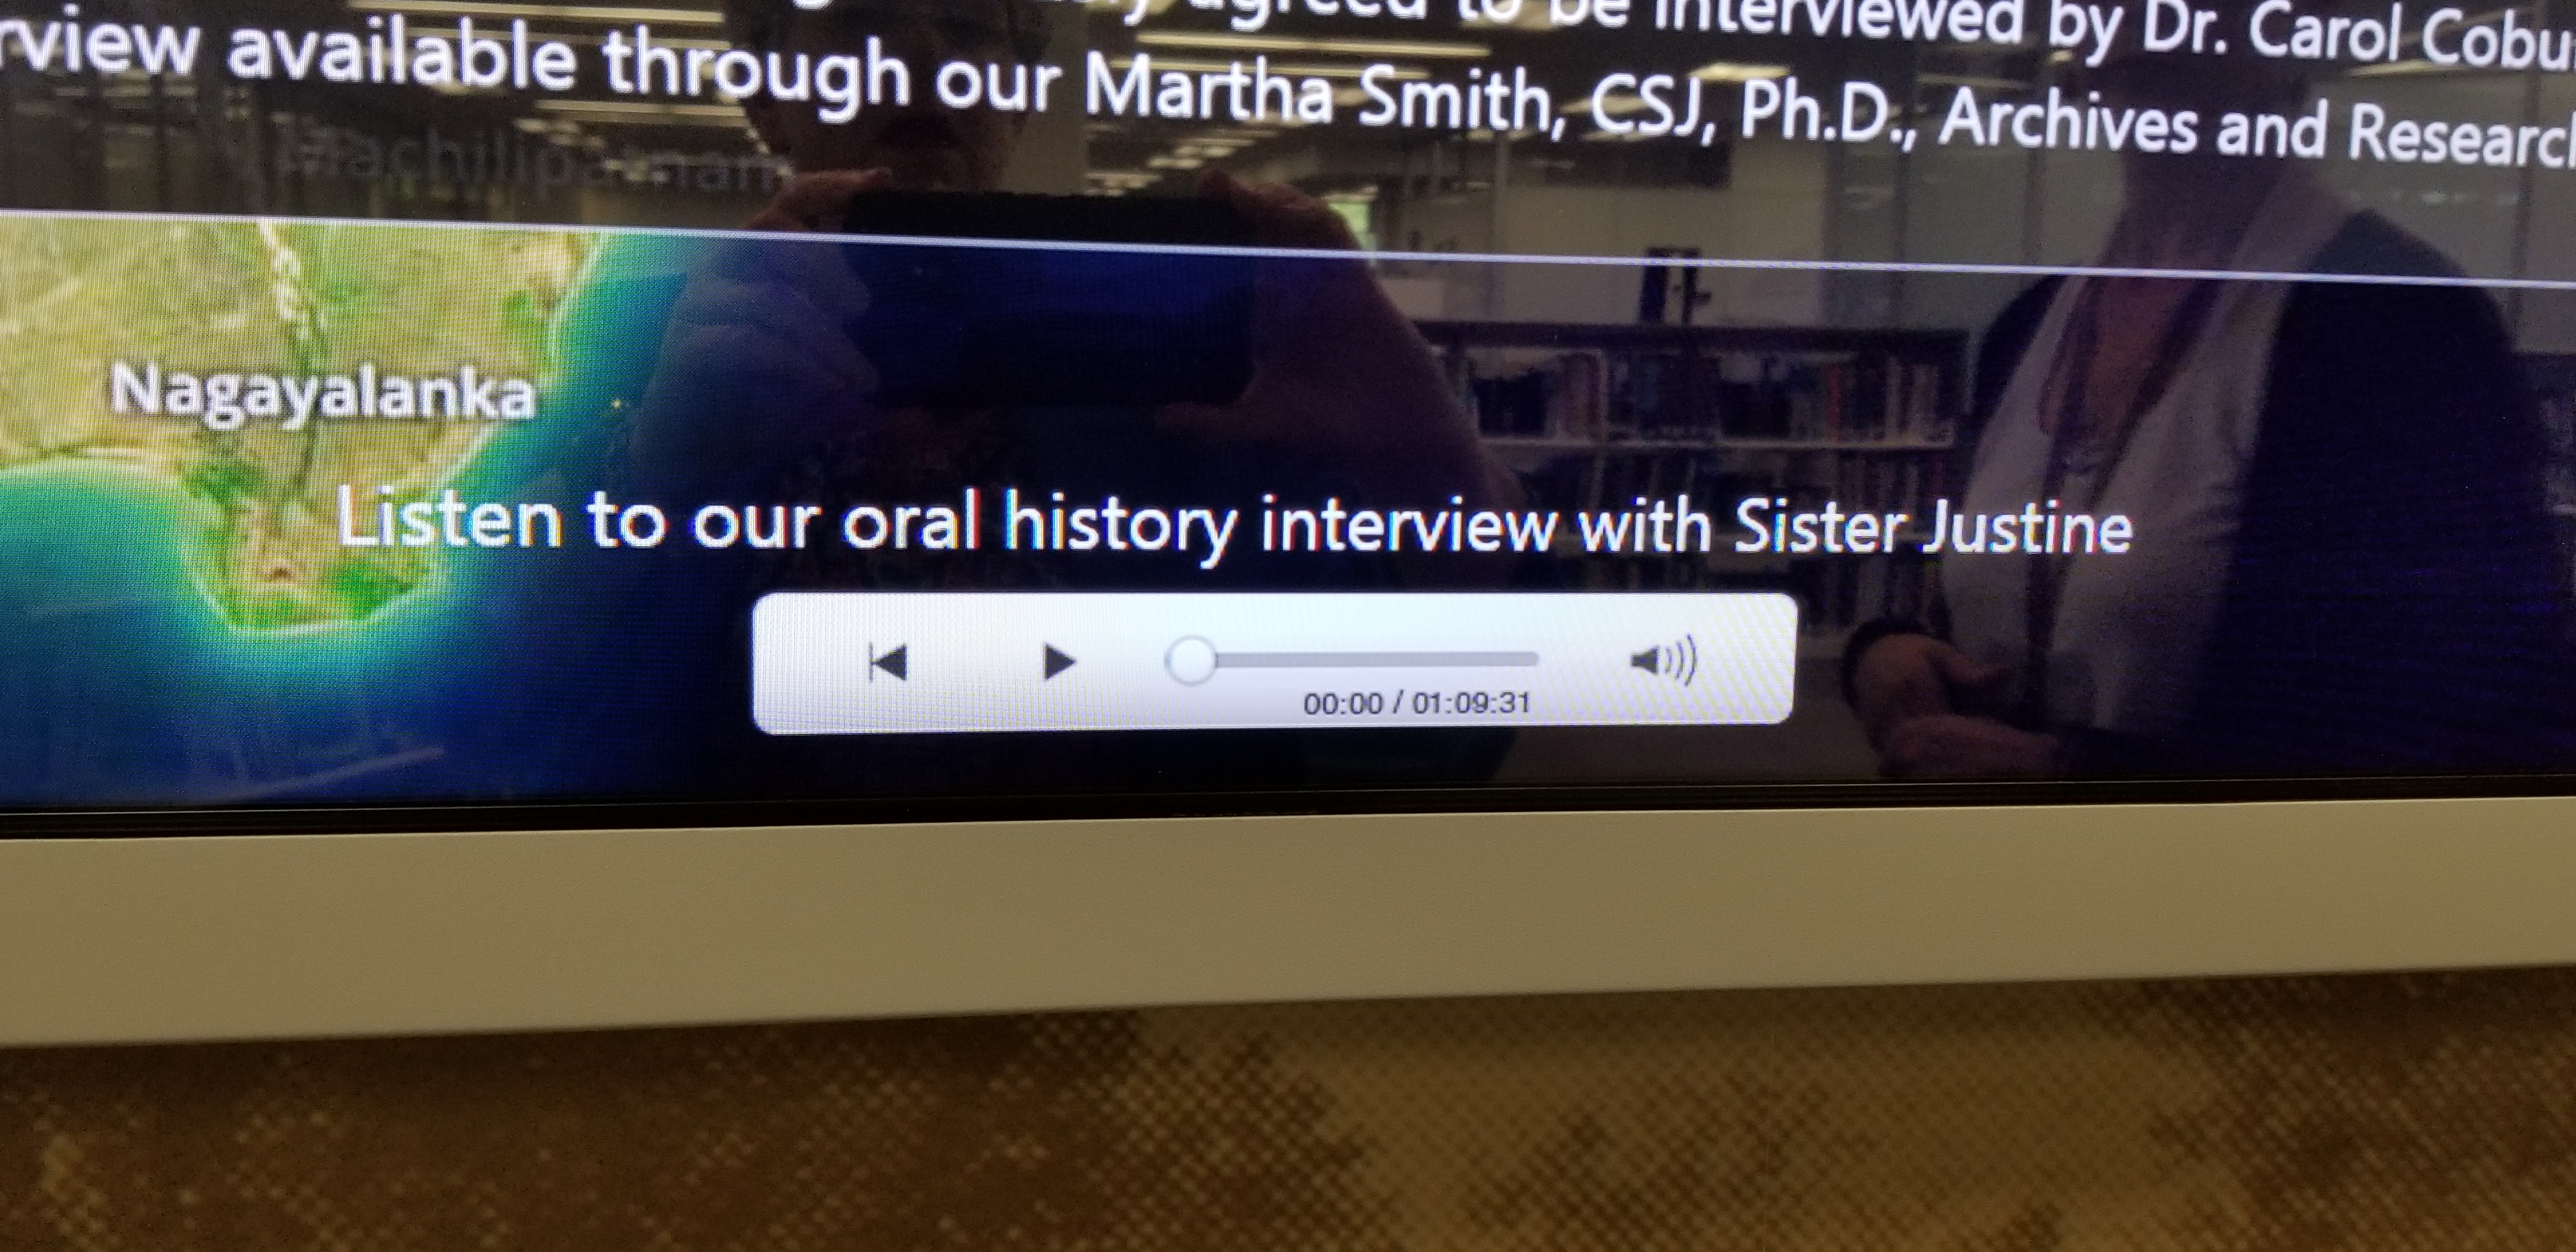 With a simple touch the students and faculty can access the oral history of Sr. Justine